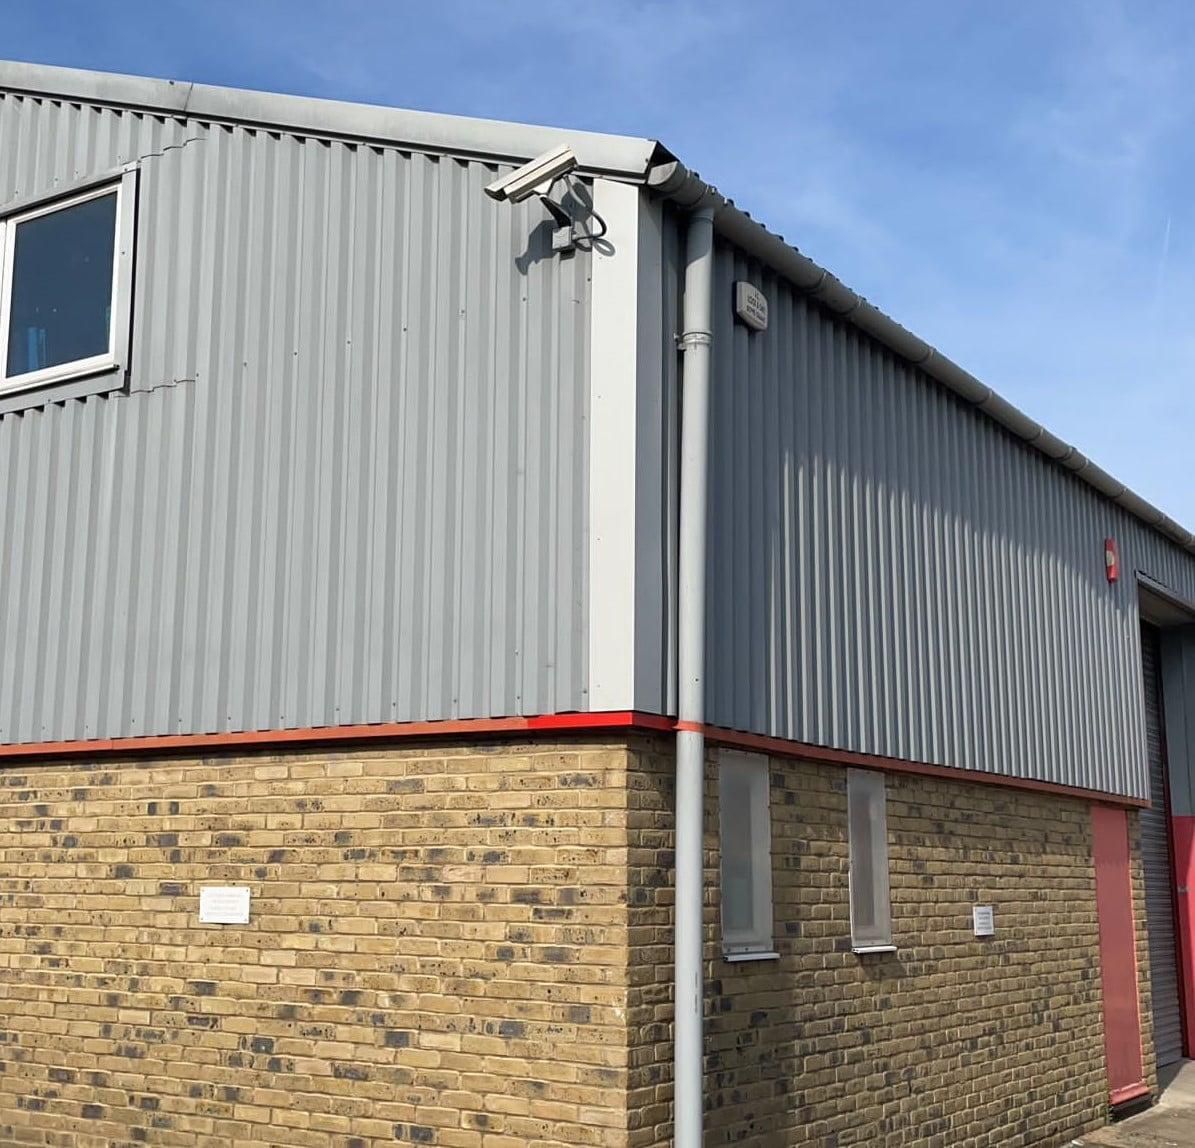 cladding repairs on an industrial building in Faversham Kent